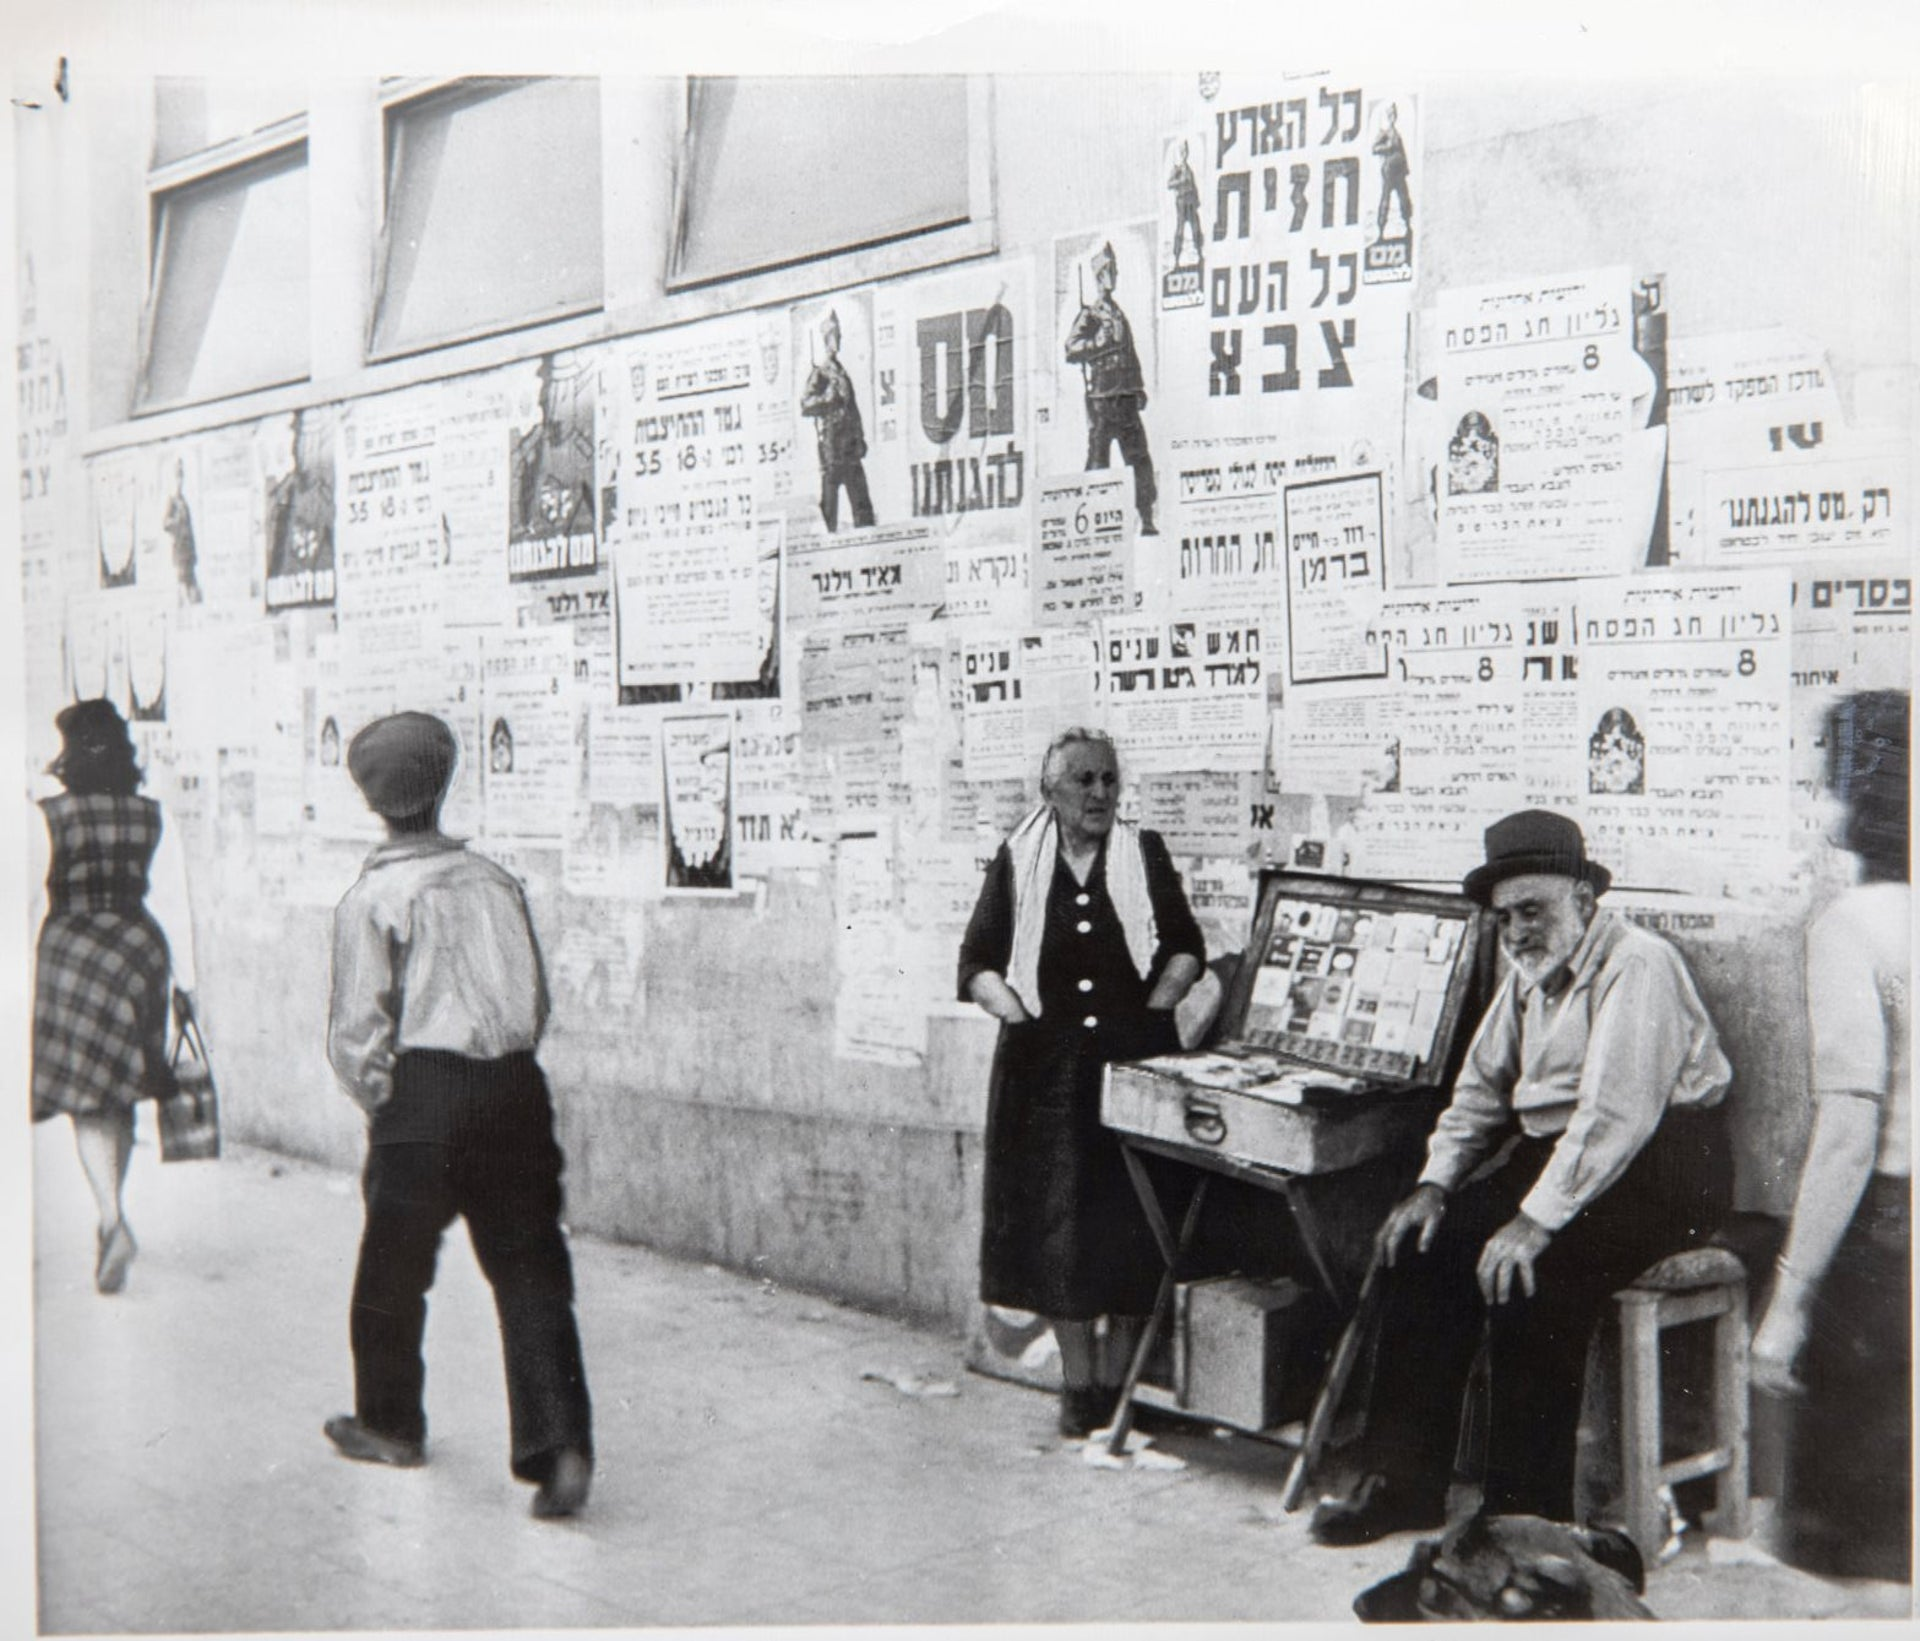 Tel Aviv street walls in covered with mobilization posters May 15 1948.